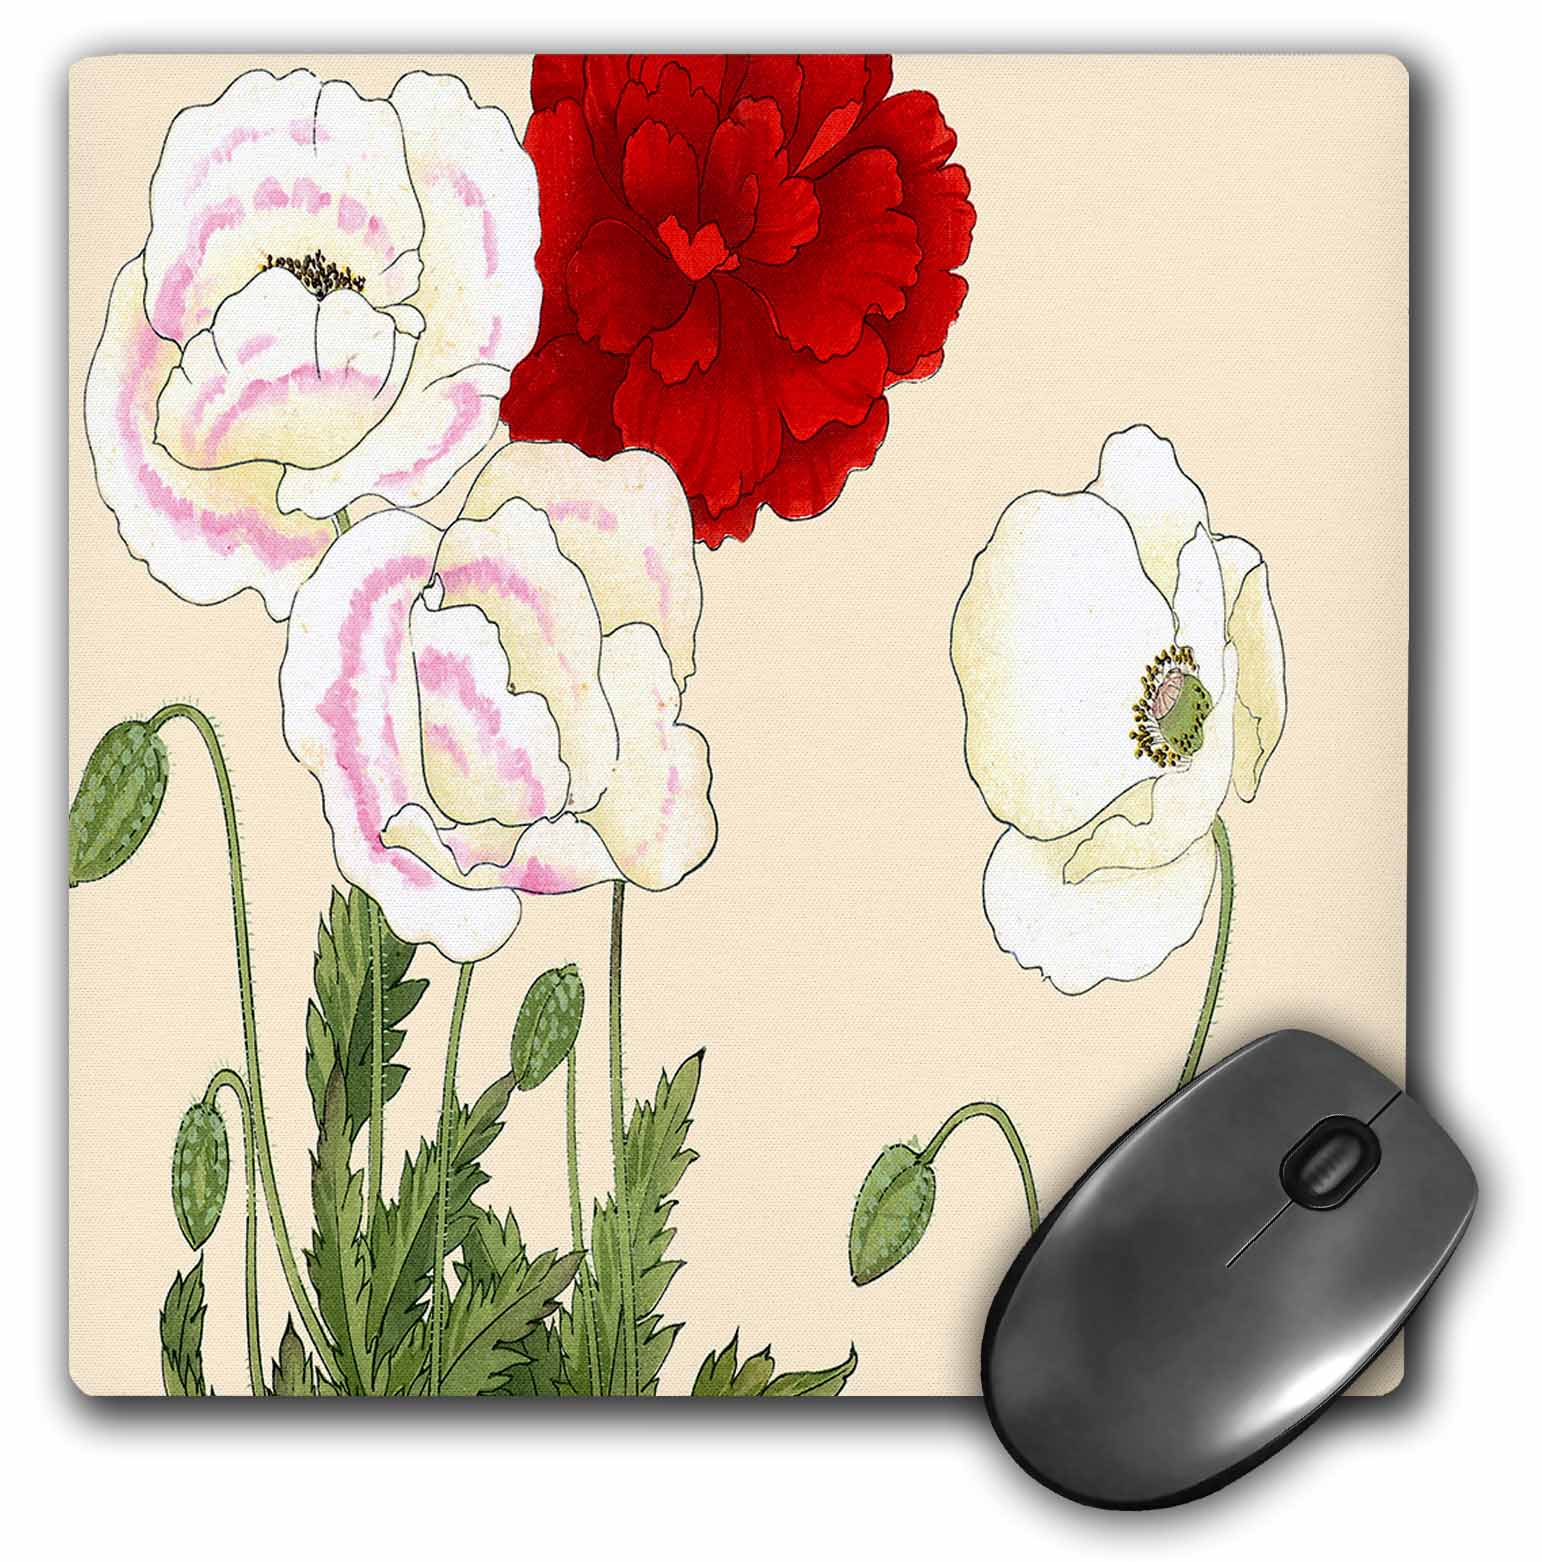 3dRose Poppy, Large Showy Flowers in Red and White with Touches of Pink, Mouse Pad, 8 by 8 inches